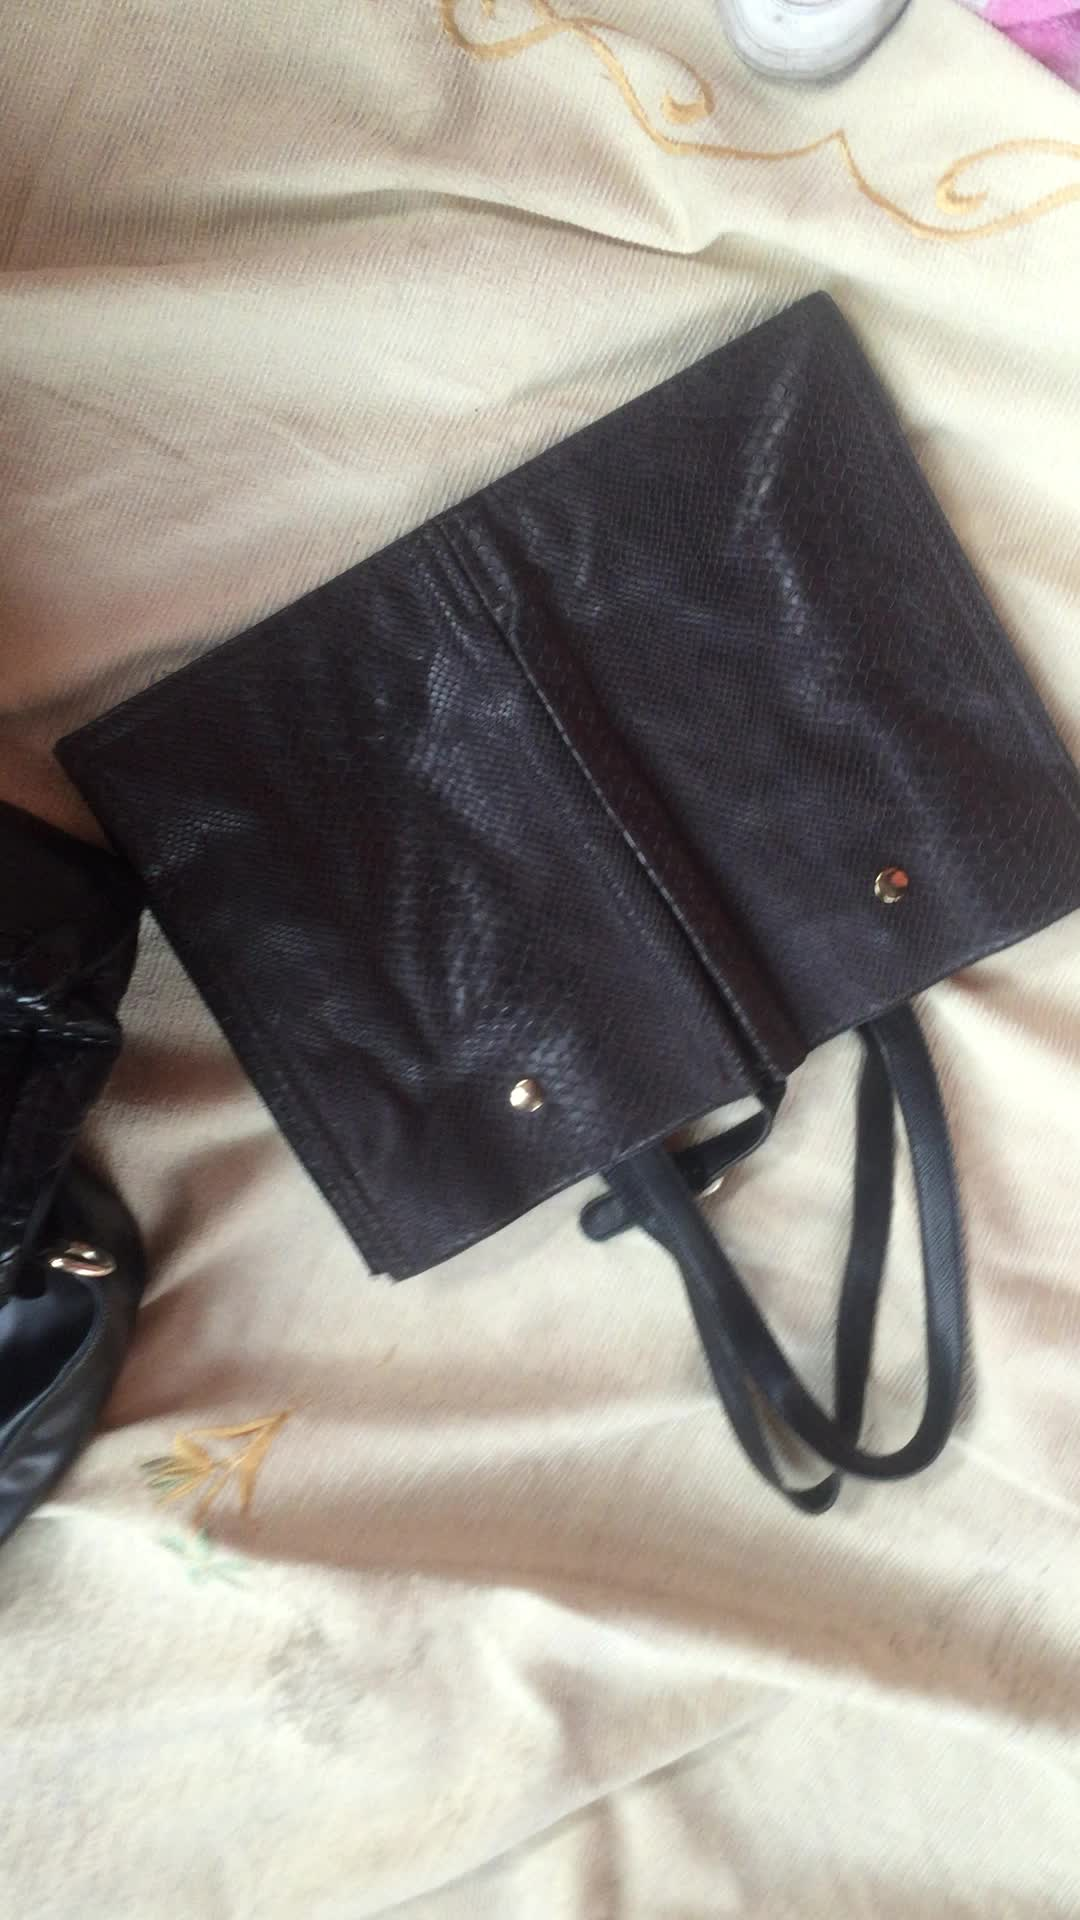 Mixed Gender Mixed Material Fashion used bags from germany wholesale used bags